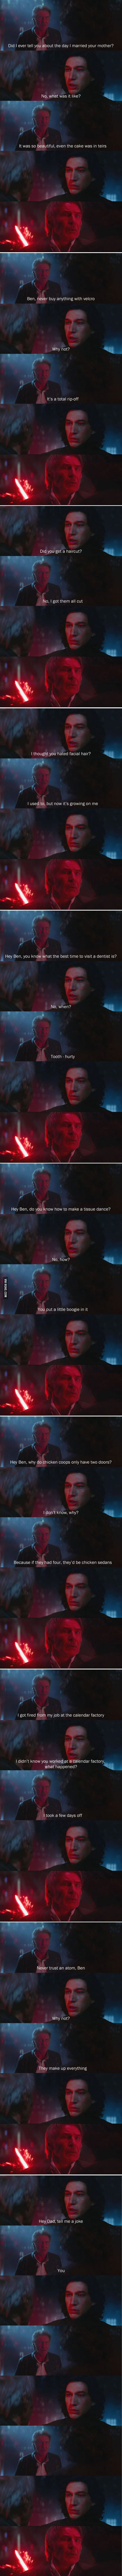 HIS LAST ONE. MY GOSH, HE DESERVED THAT. (Not really, I just REALLY like Kylo Ren, that's all.. X3)